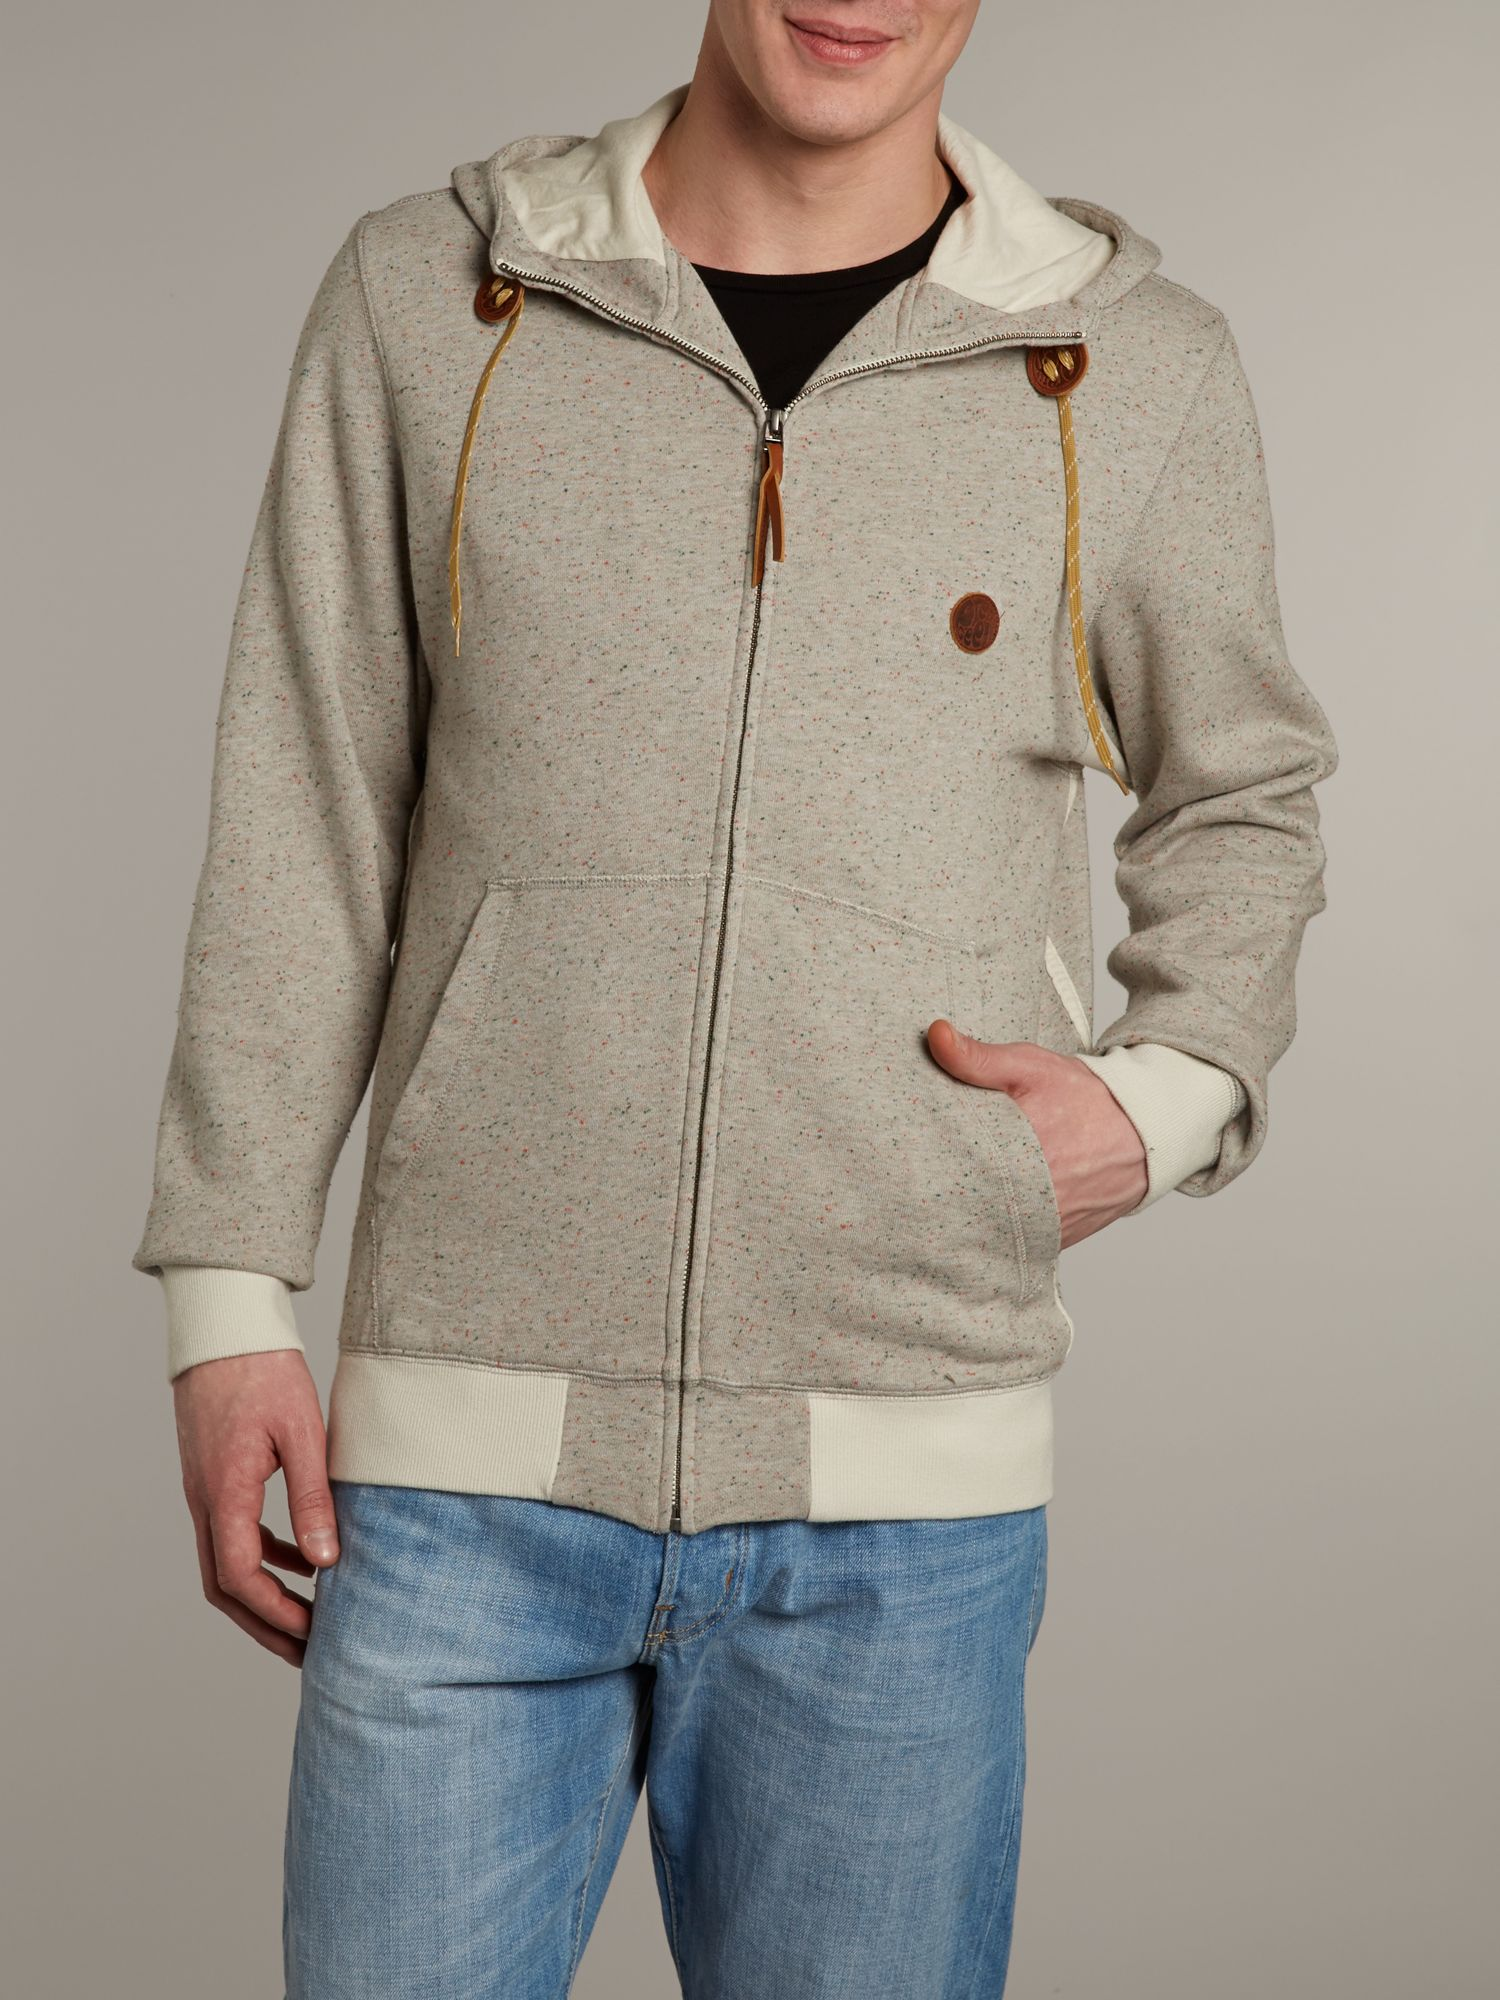 Zip up hooded sweater